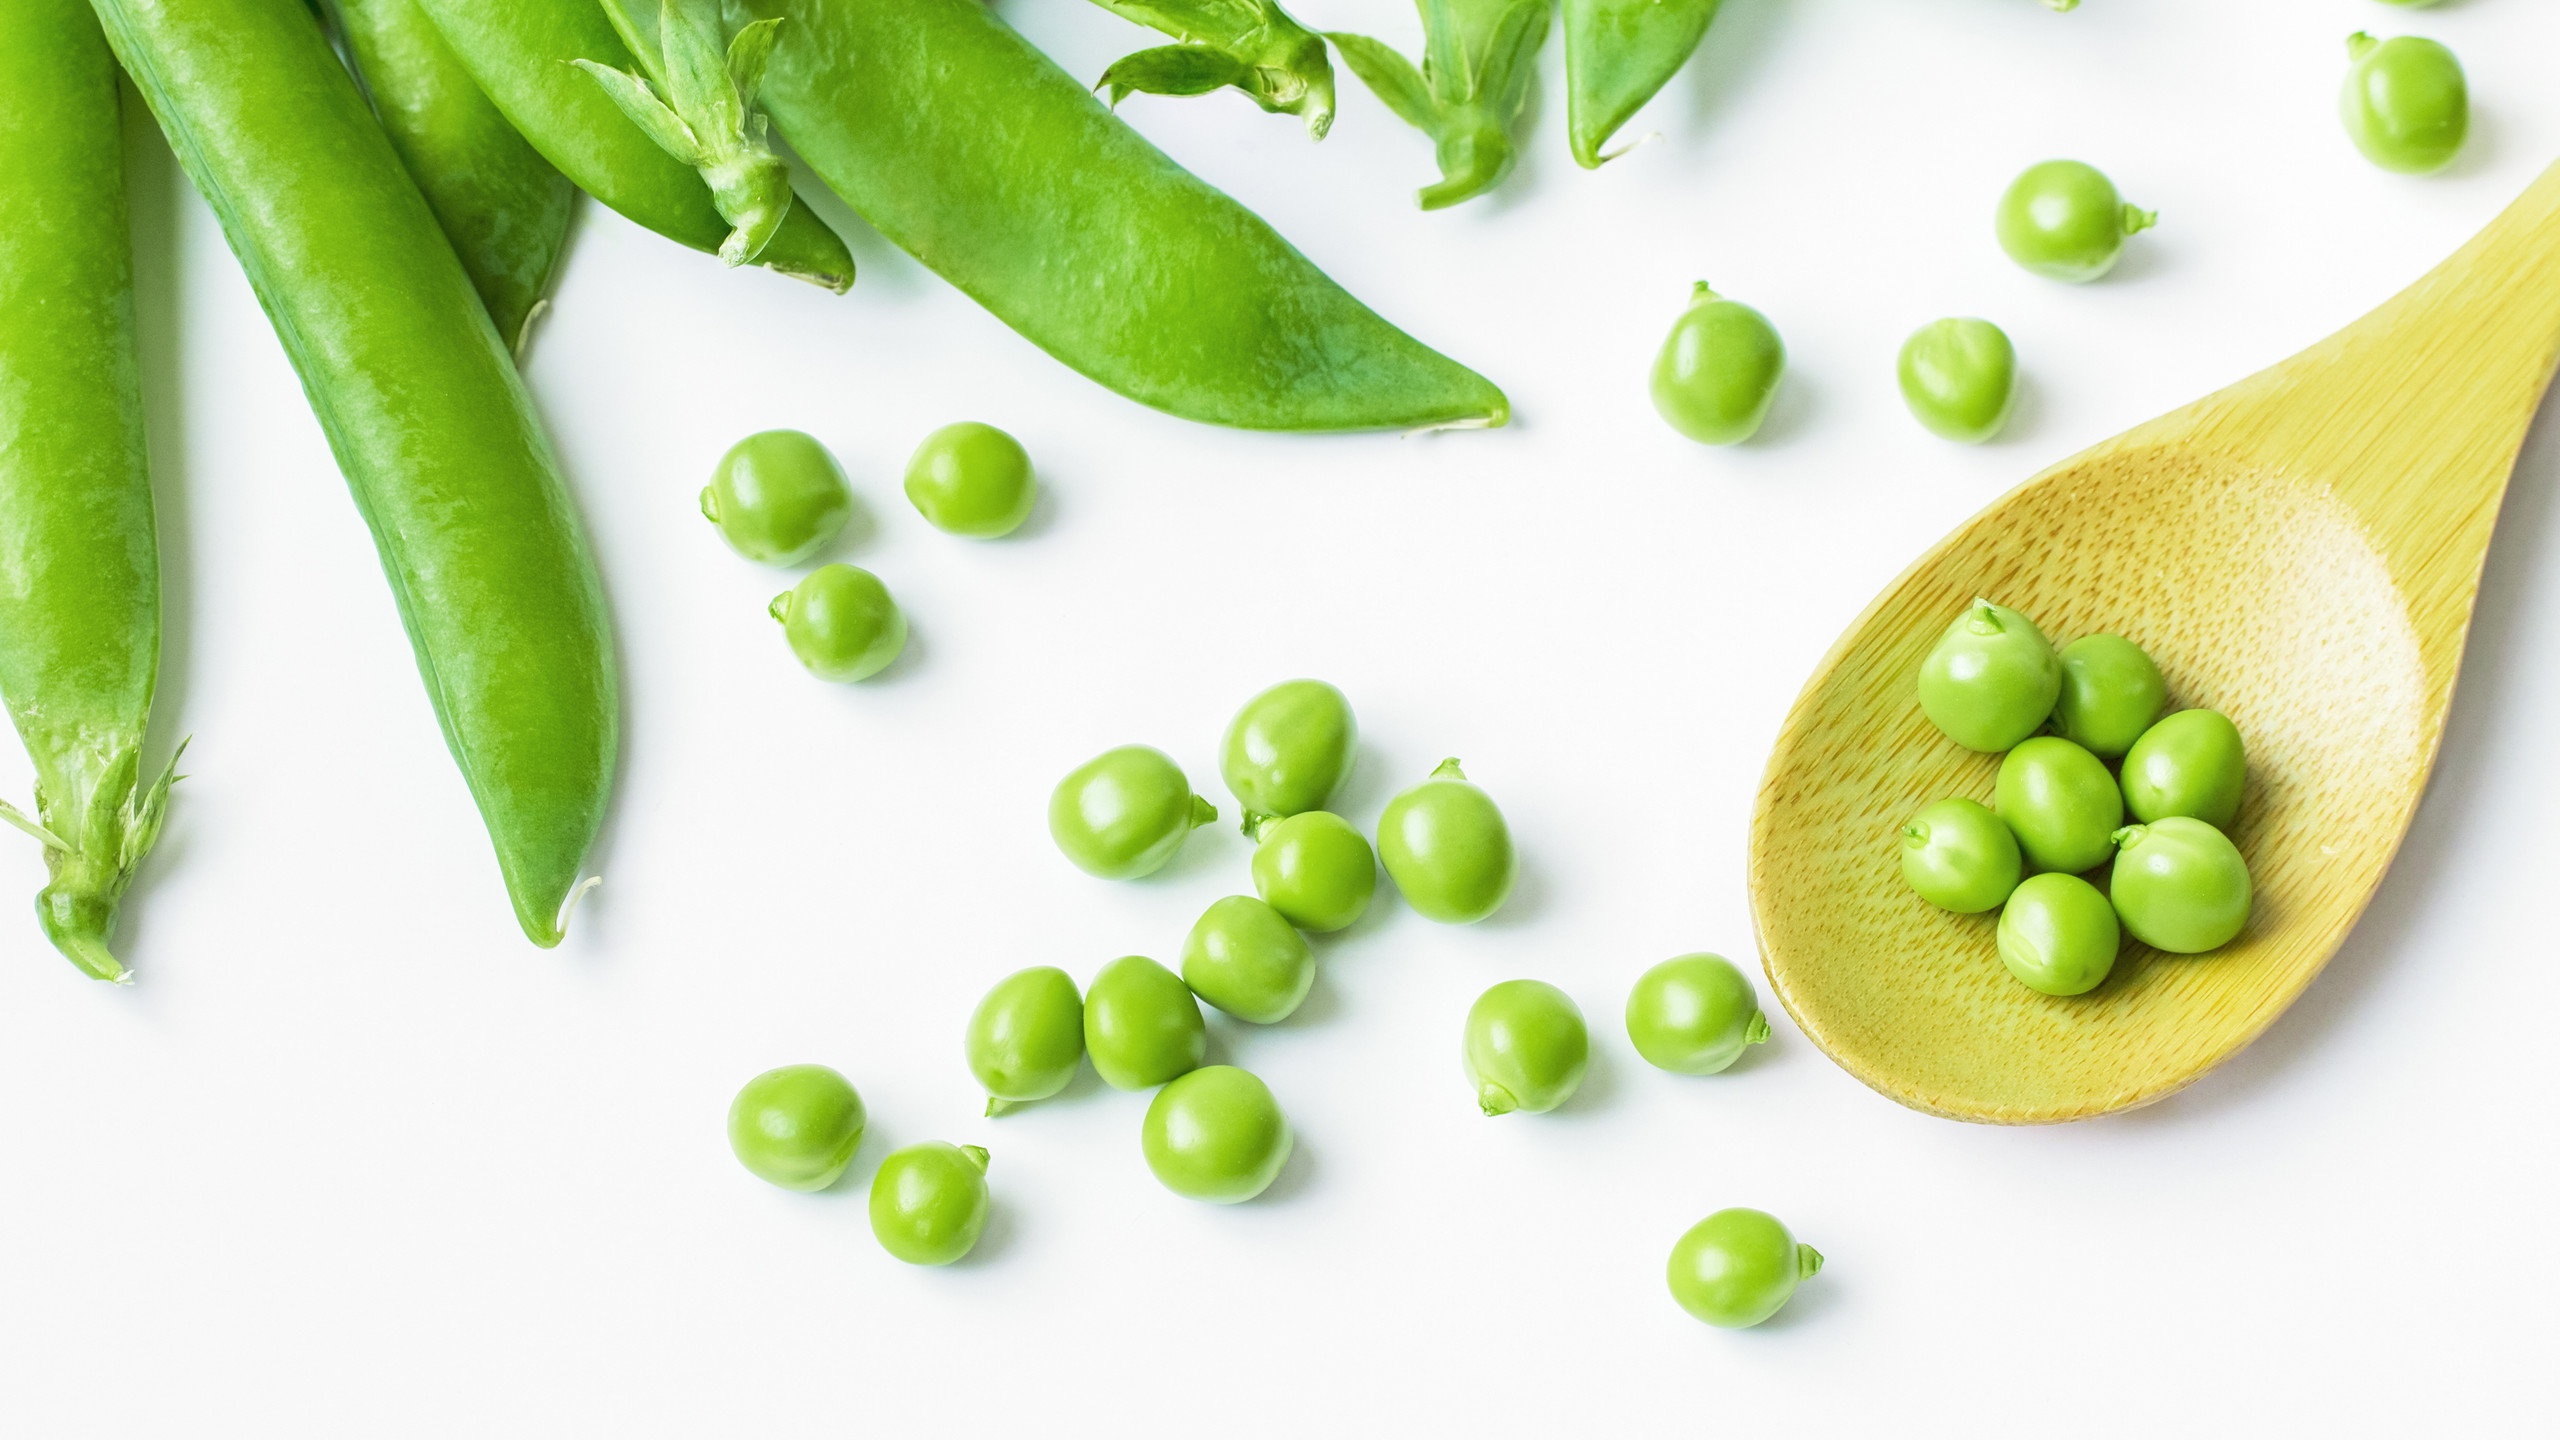 One cup of peas has 8 grams of protein. Mash them up with some mint and a little butter for a quick side dish, make them into a soup or toss them into salads.